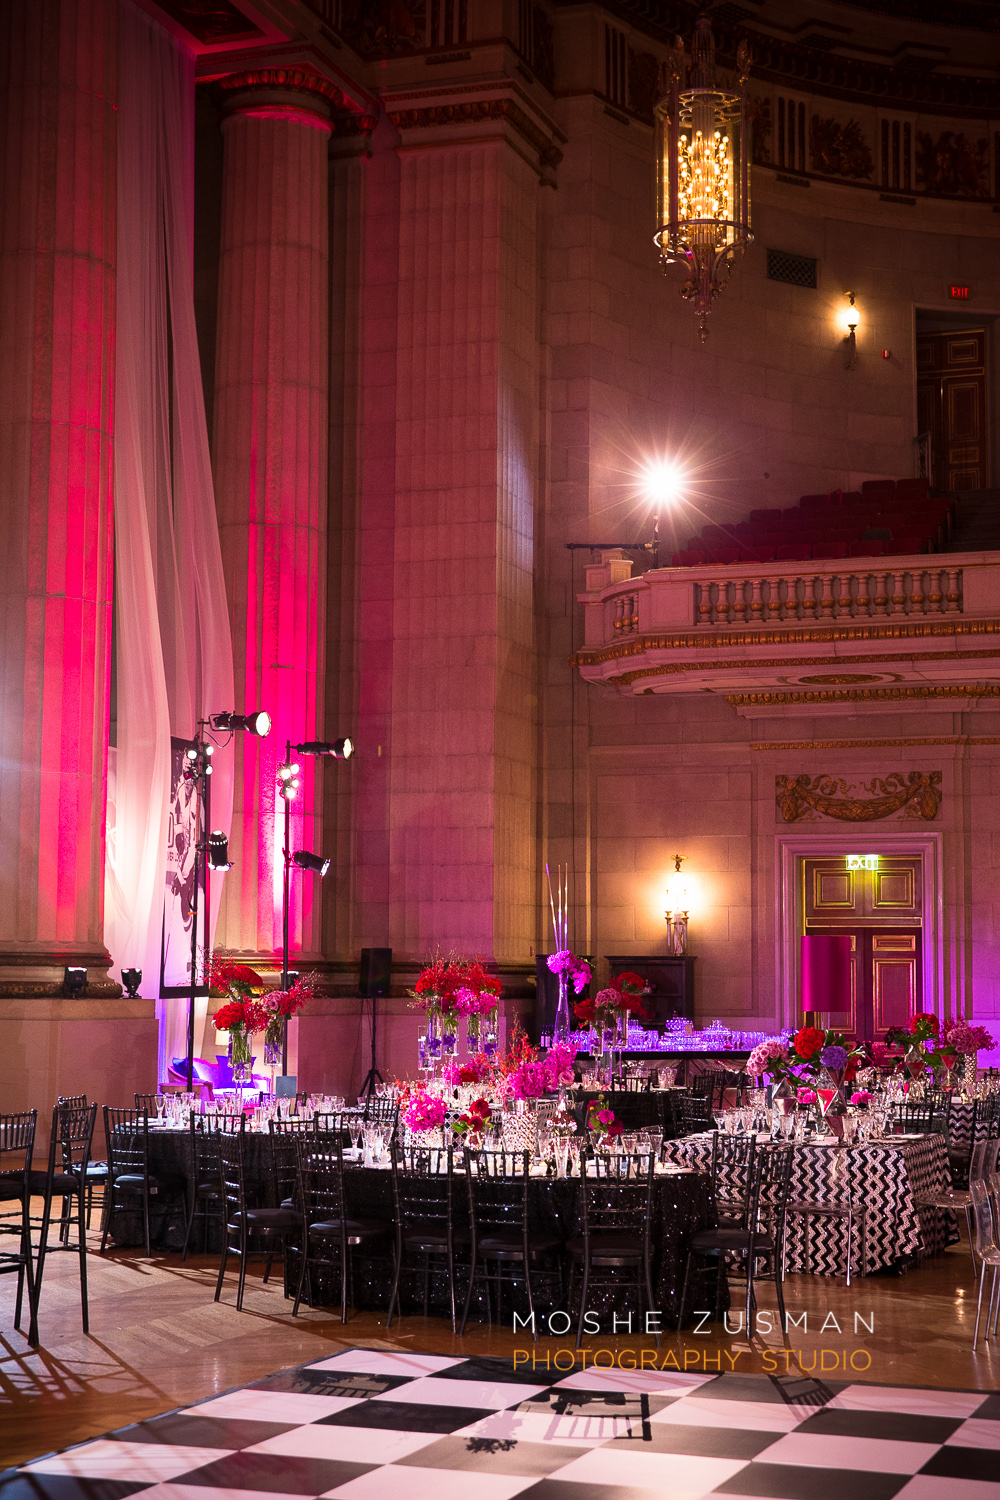 Bar-Mitzvah-photographer-moshe-zusman-RSVP-mellon-auditorium-22.jpg